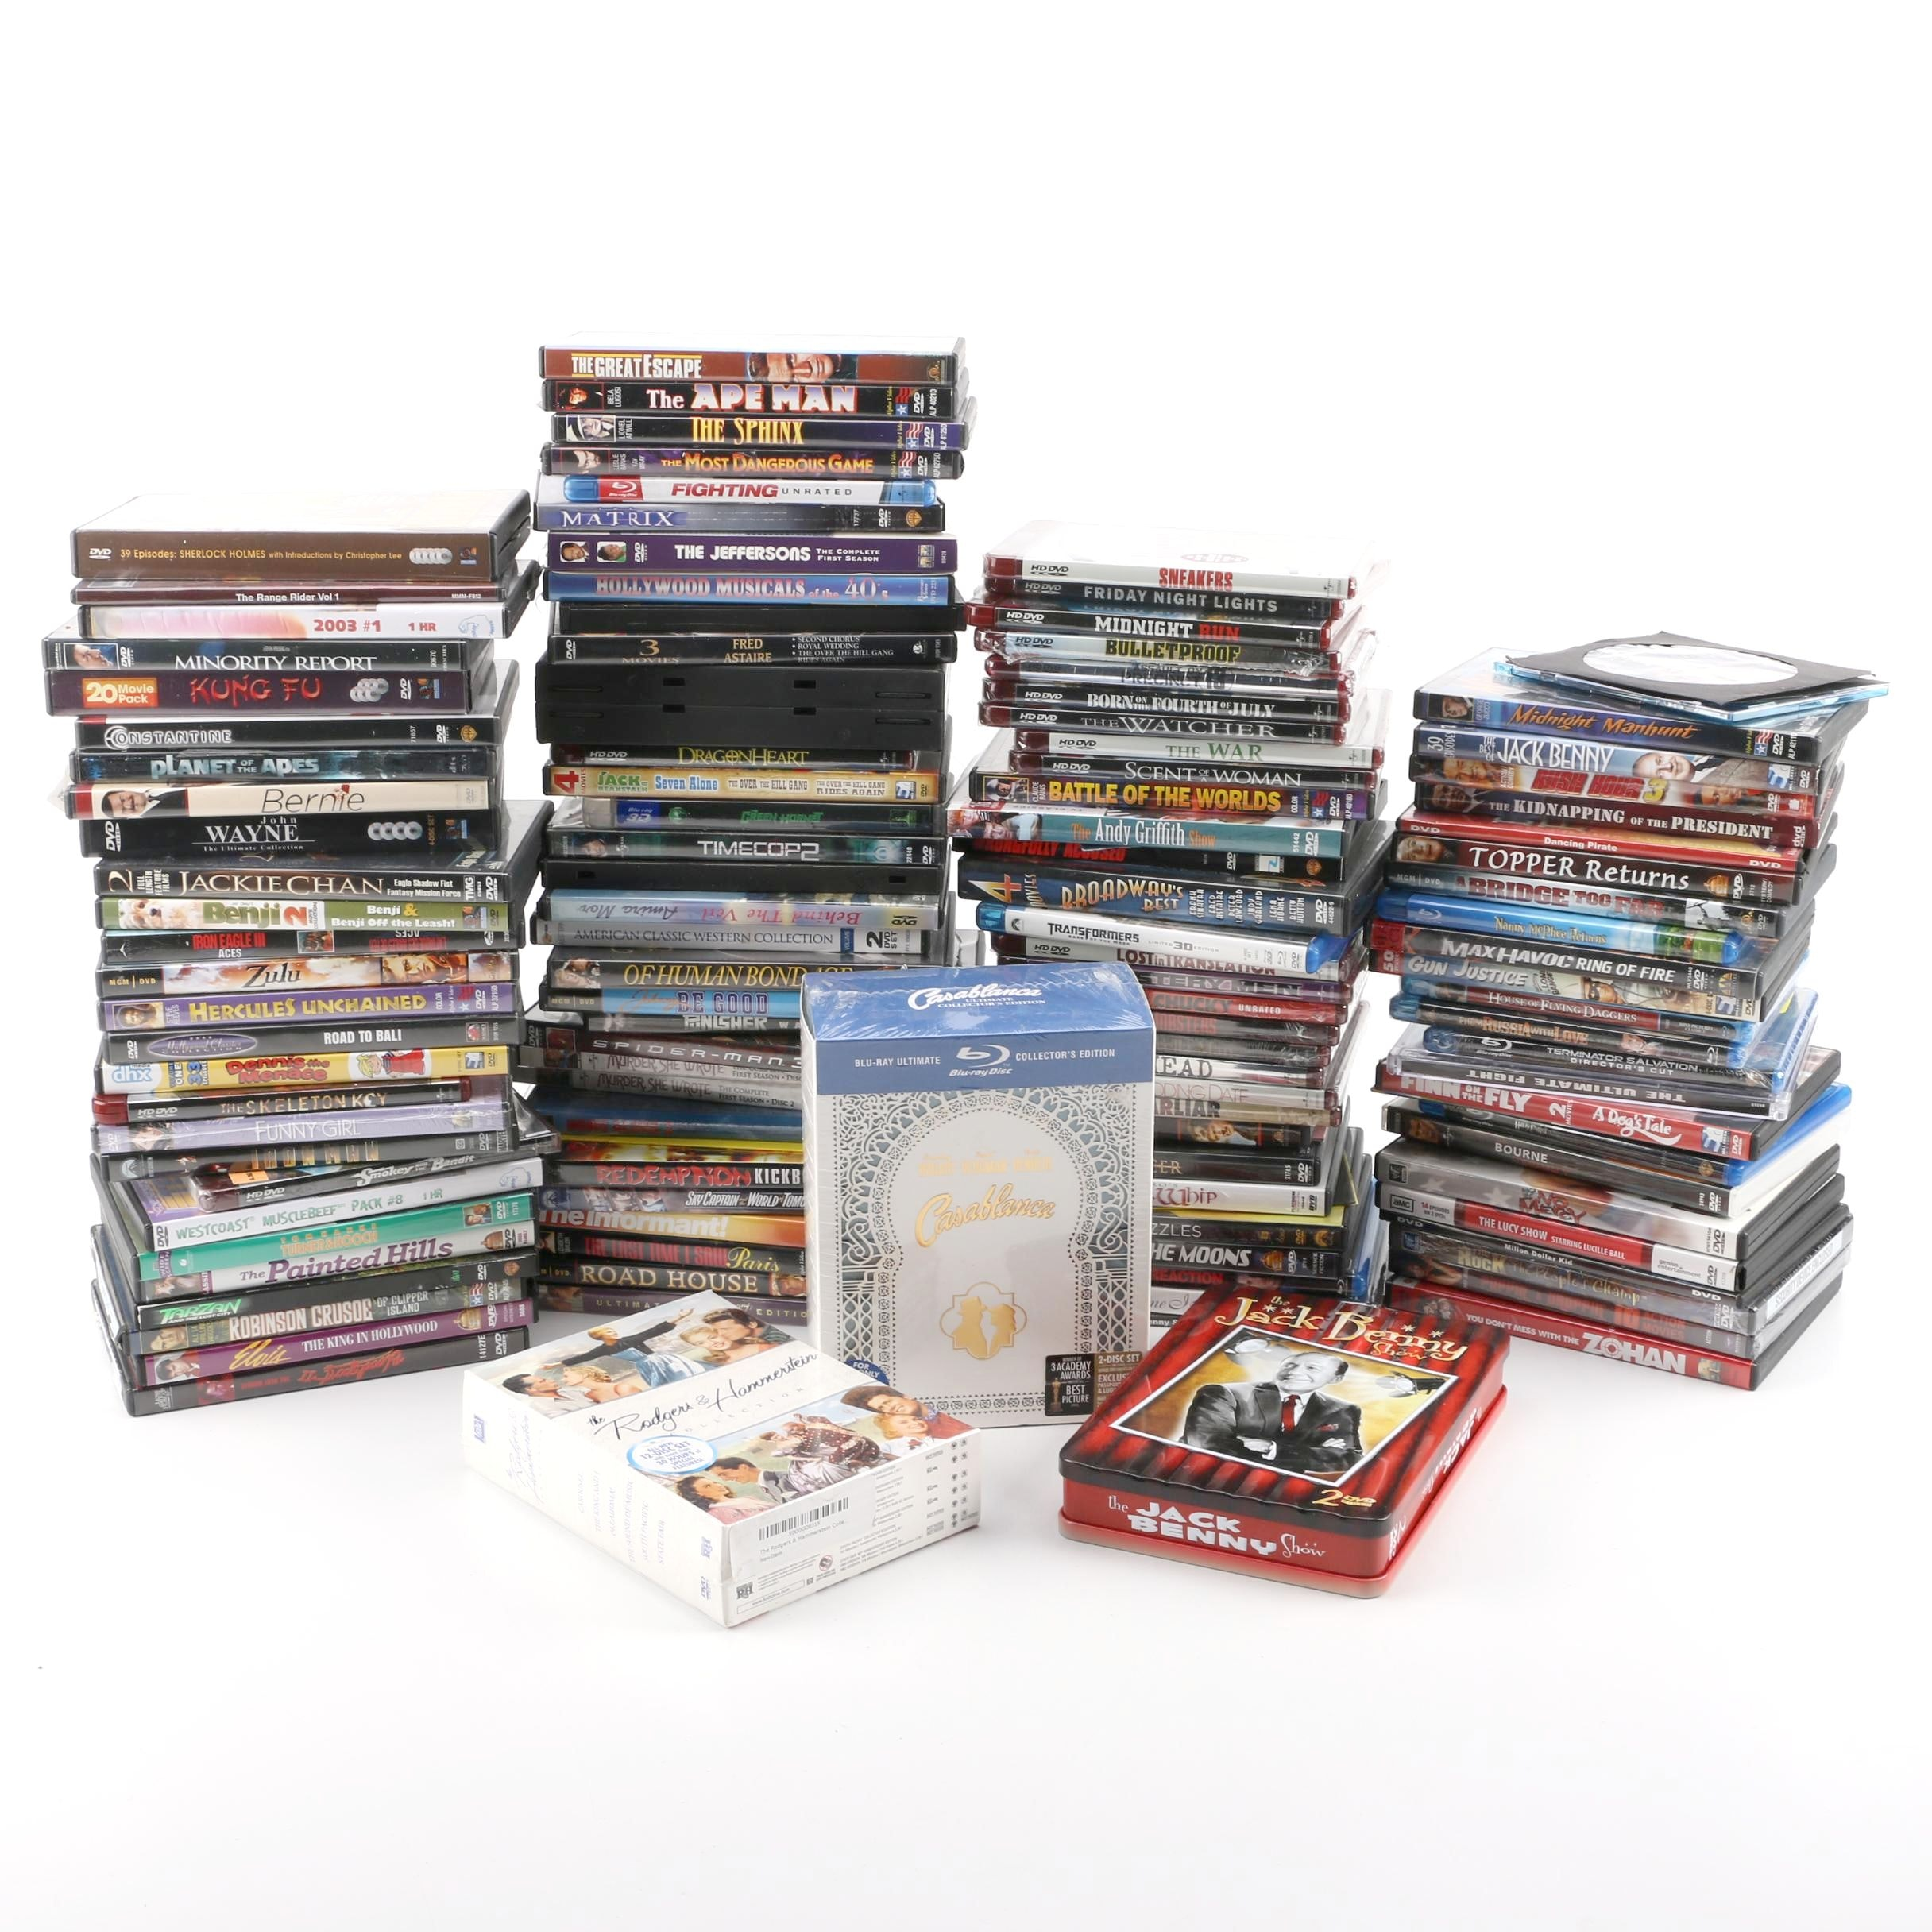 Casablanca Collector's Edition, Other Blu-ray Discs and DVDs